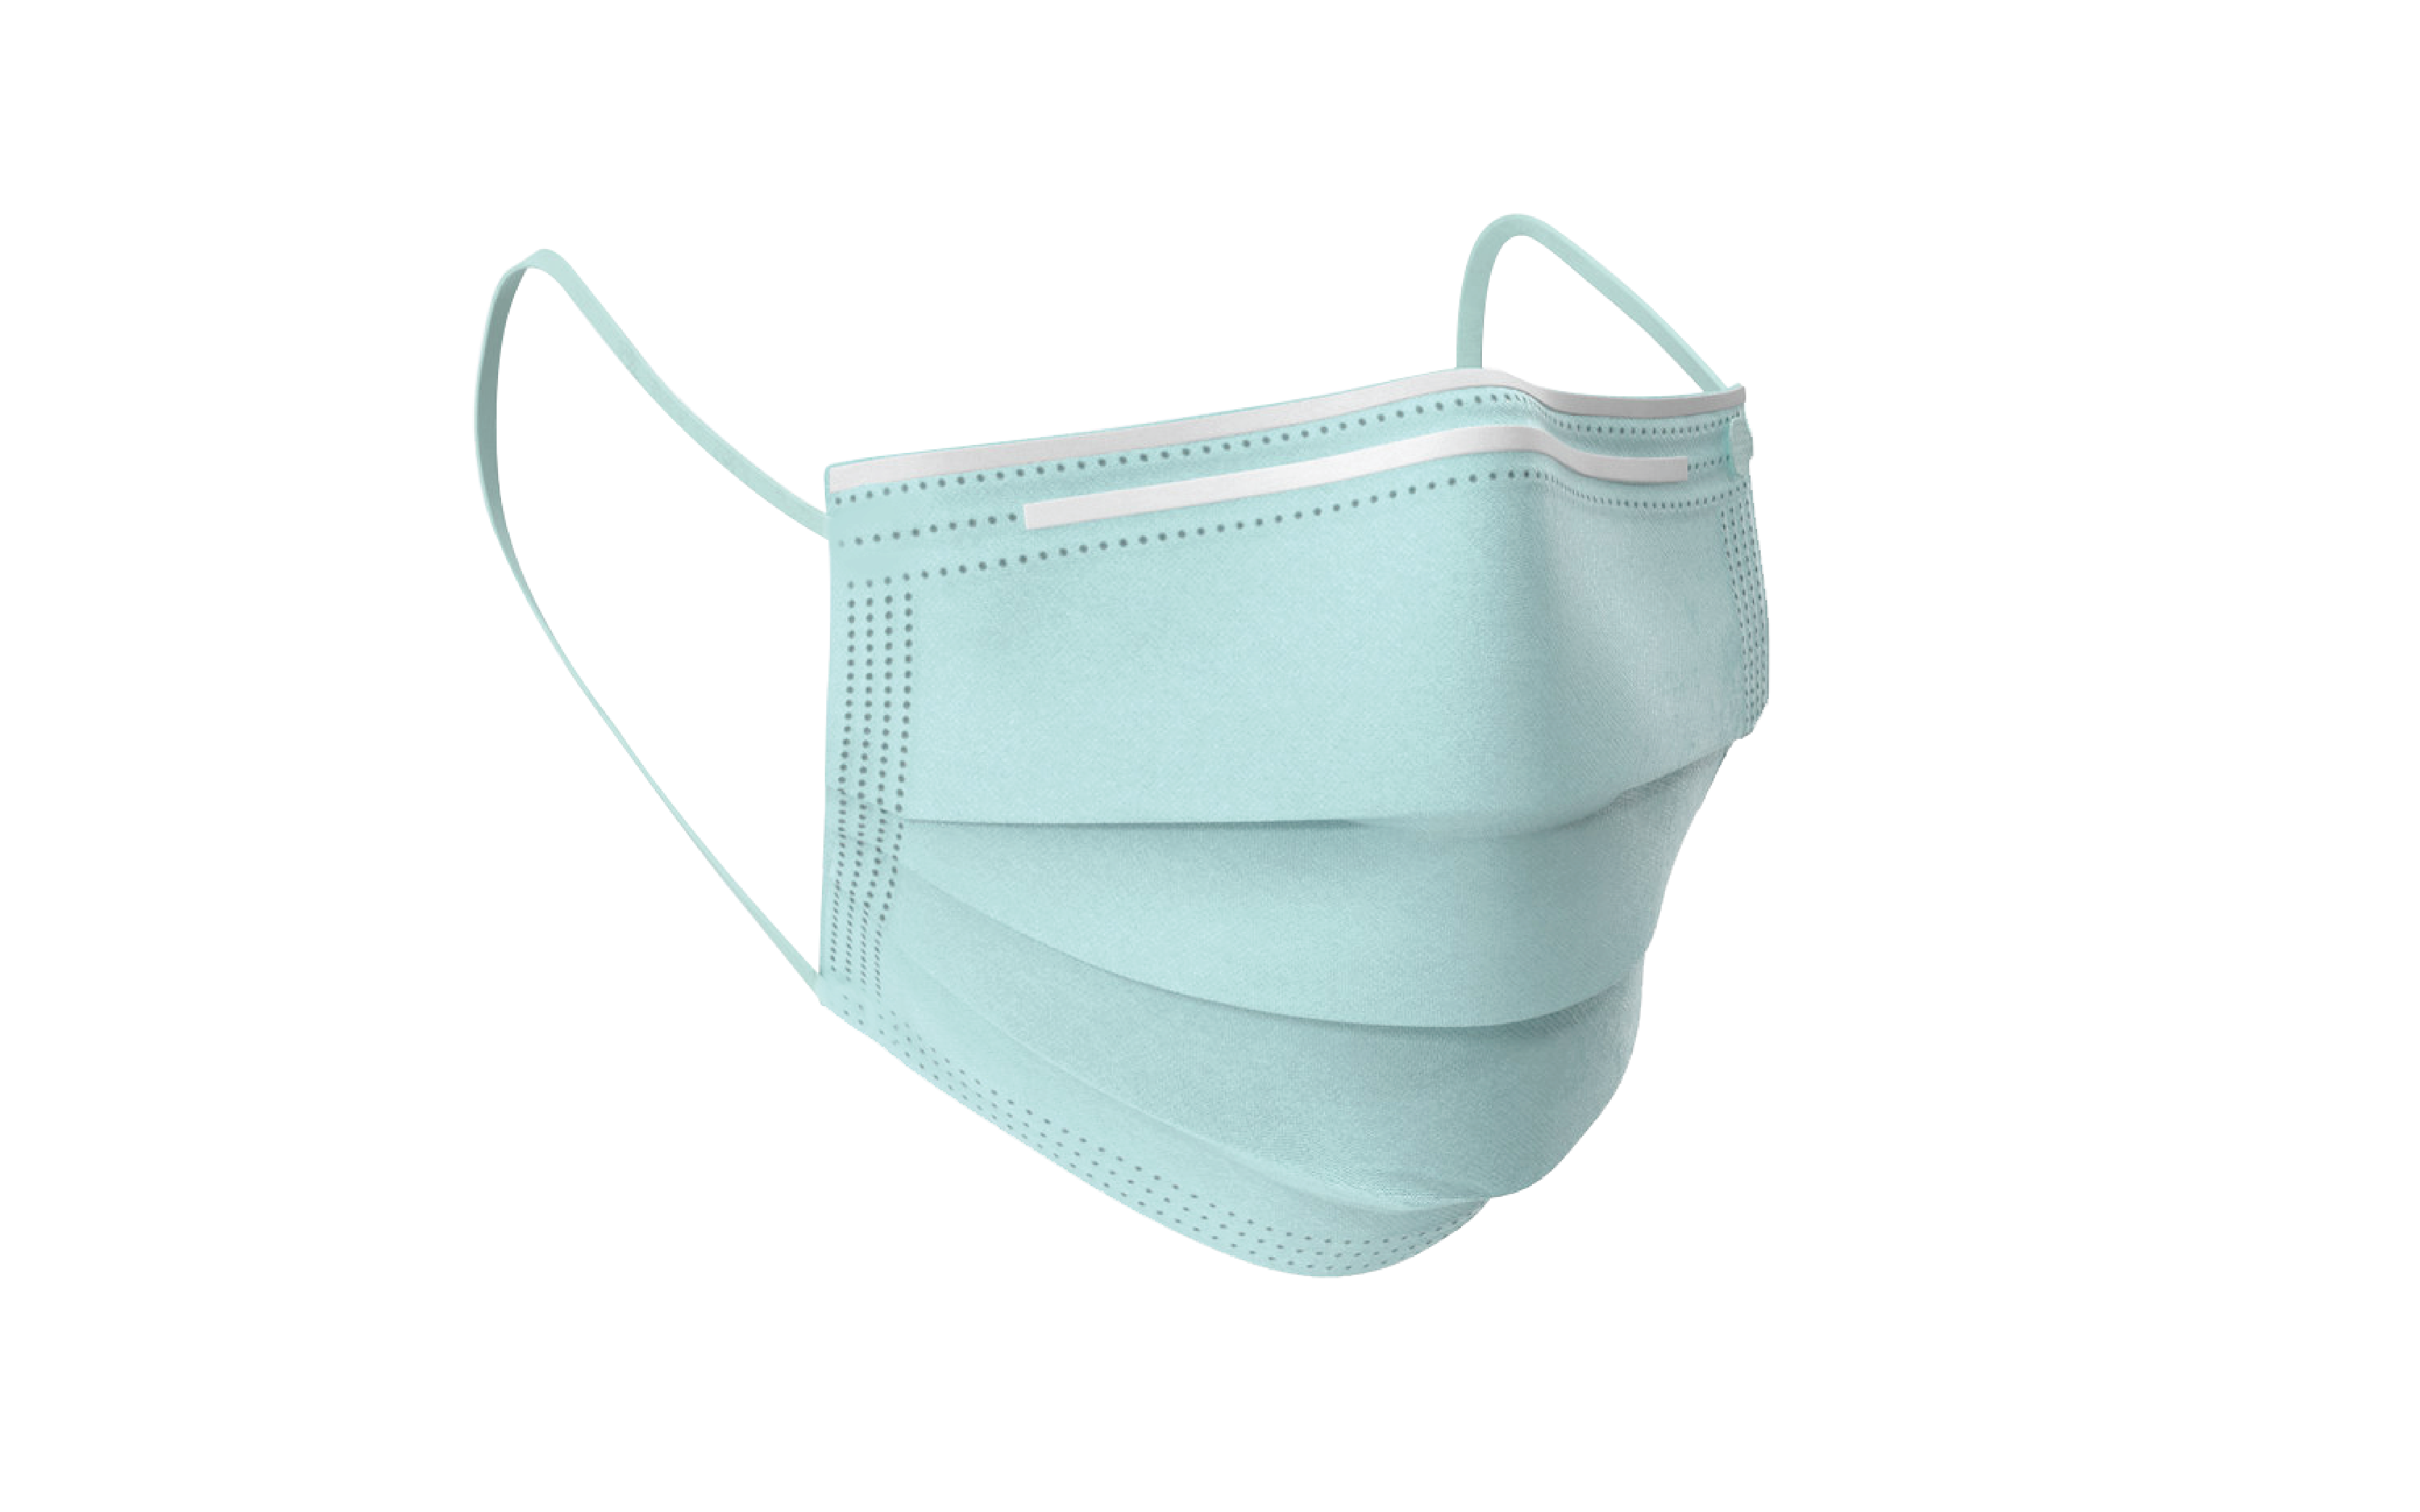 surgical medical mask hd png